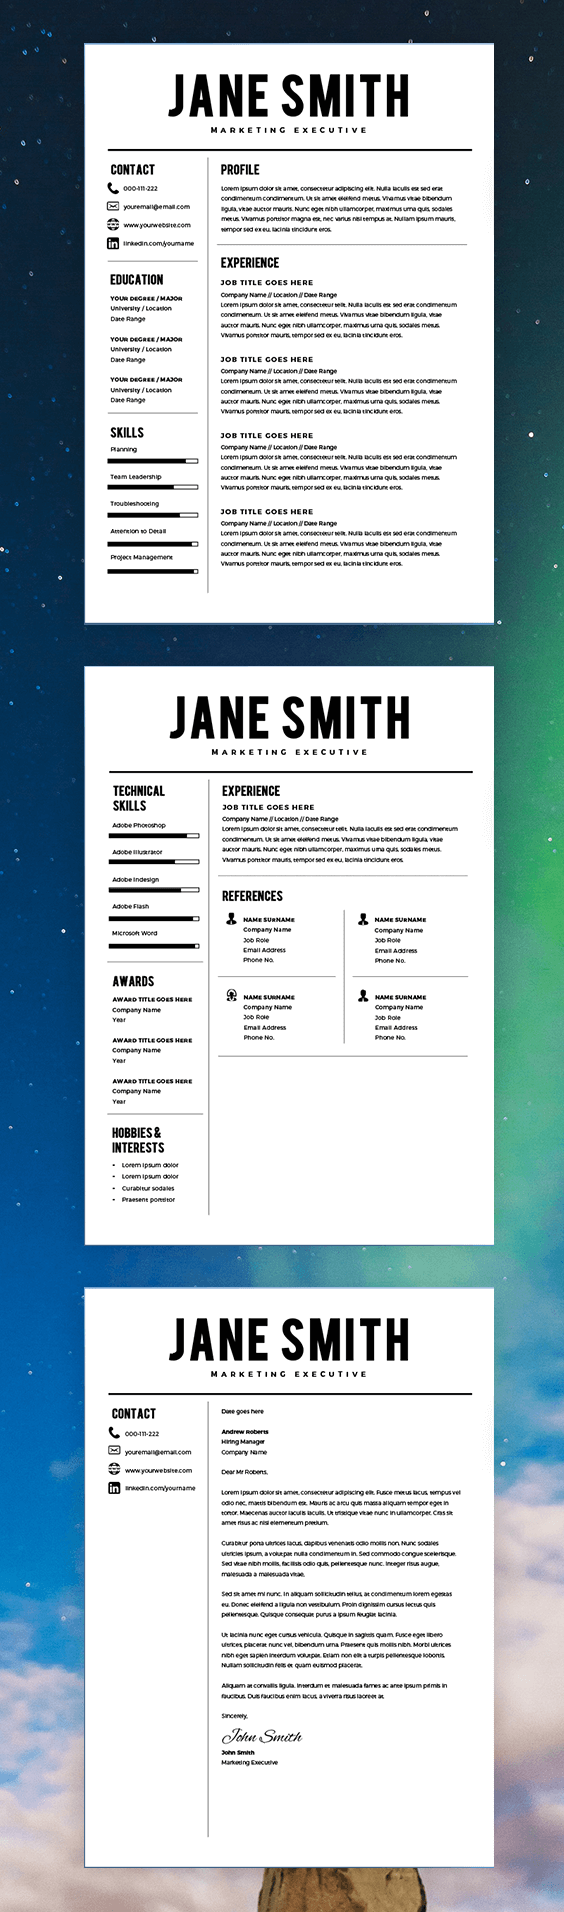 Best resume template cv template free cover letter ms word on best resume template cv template free cover letter ms word on mac yelopaper Images